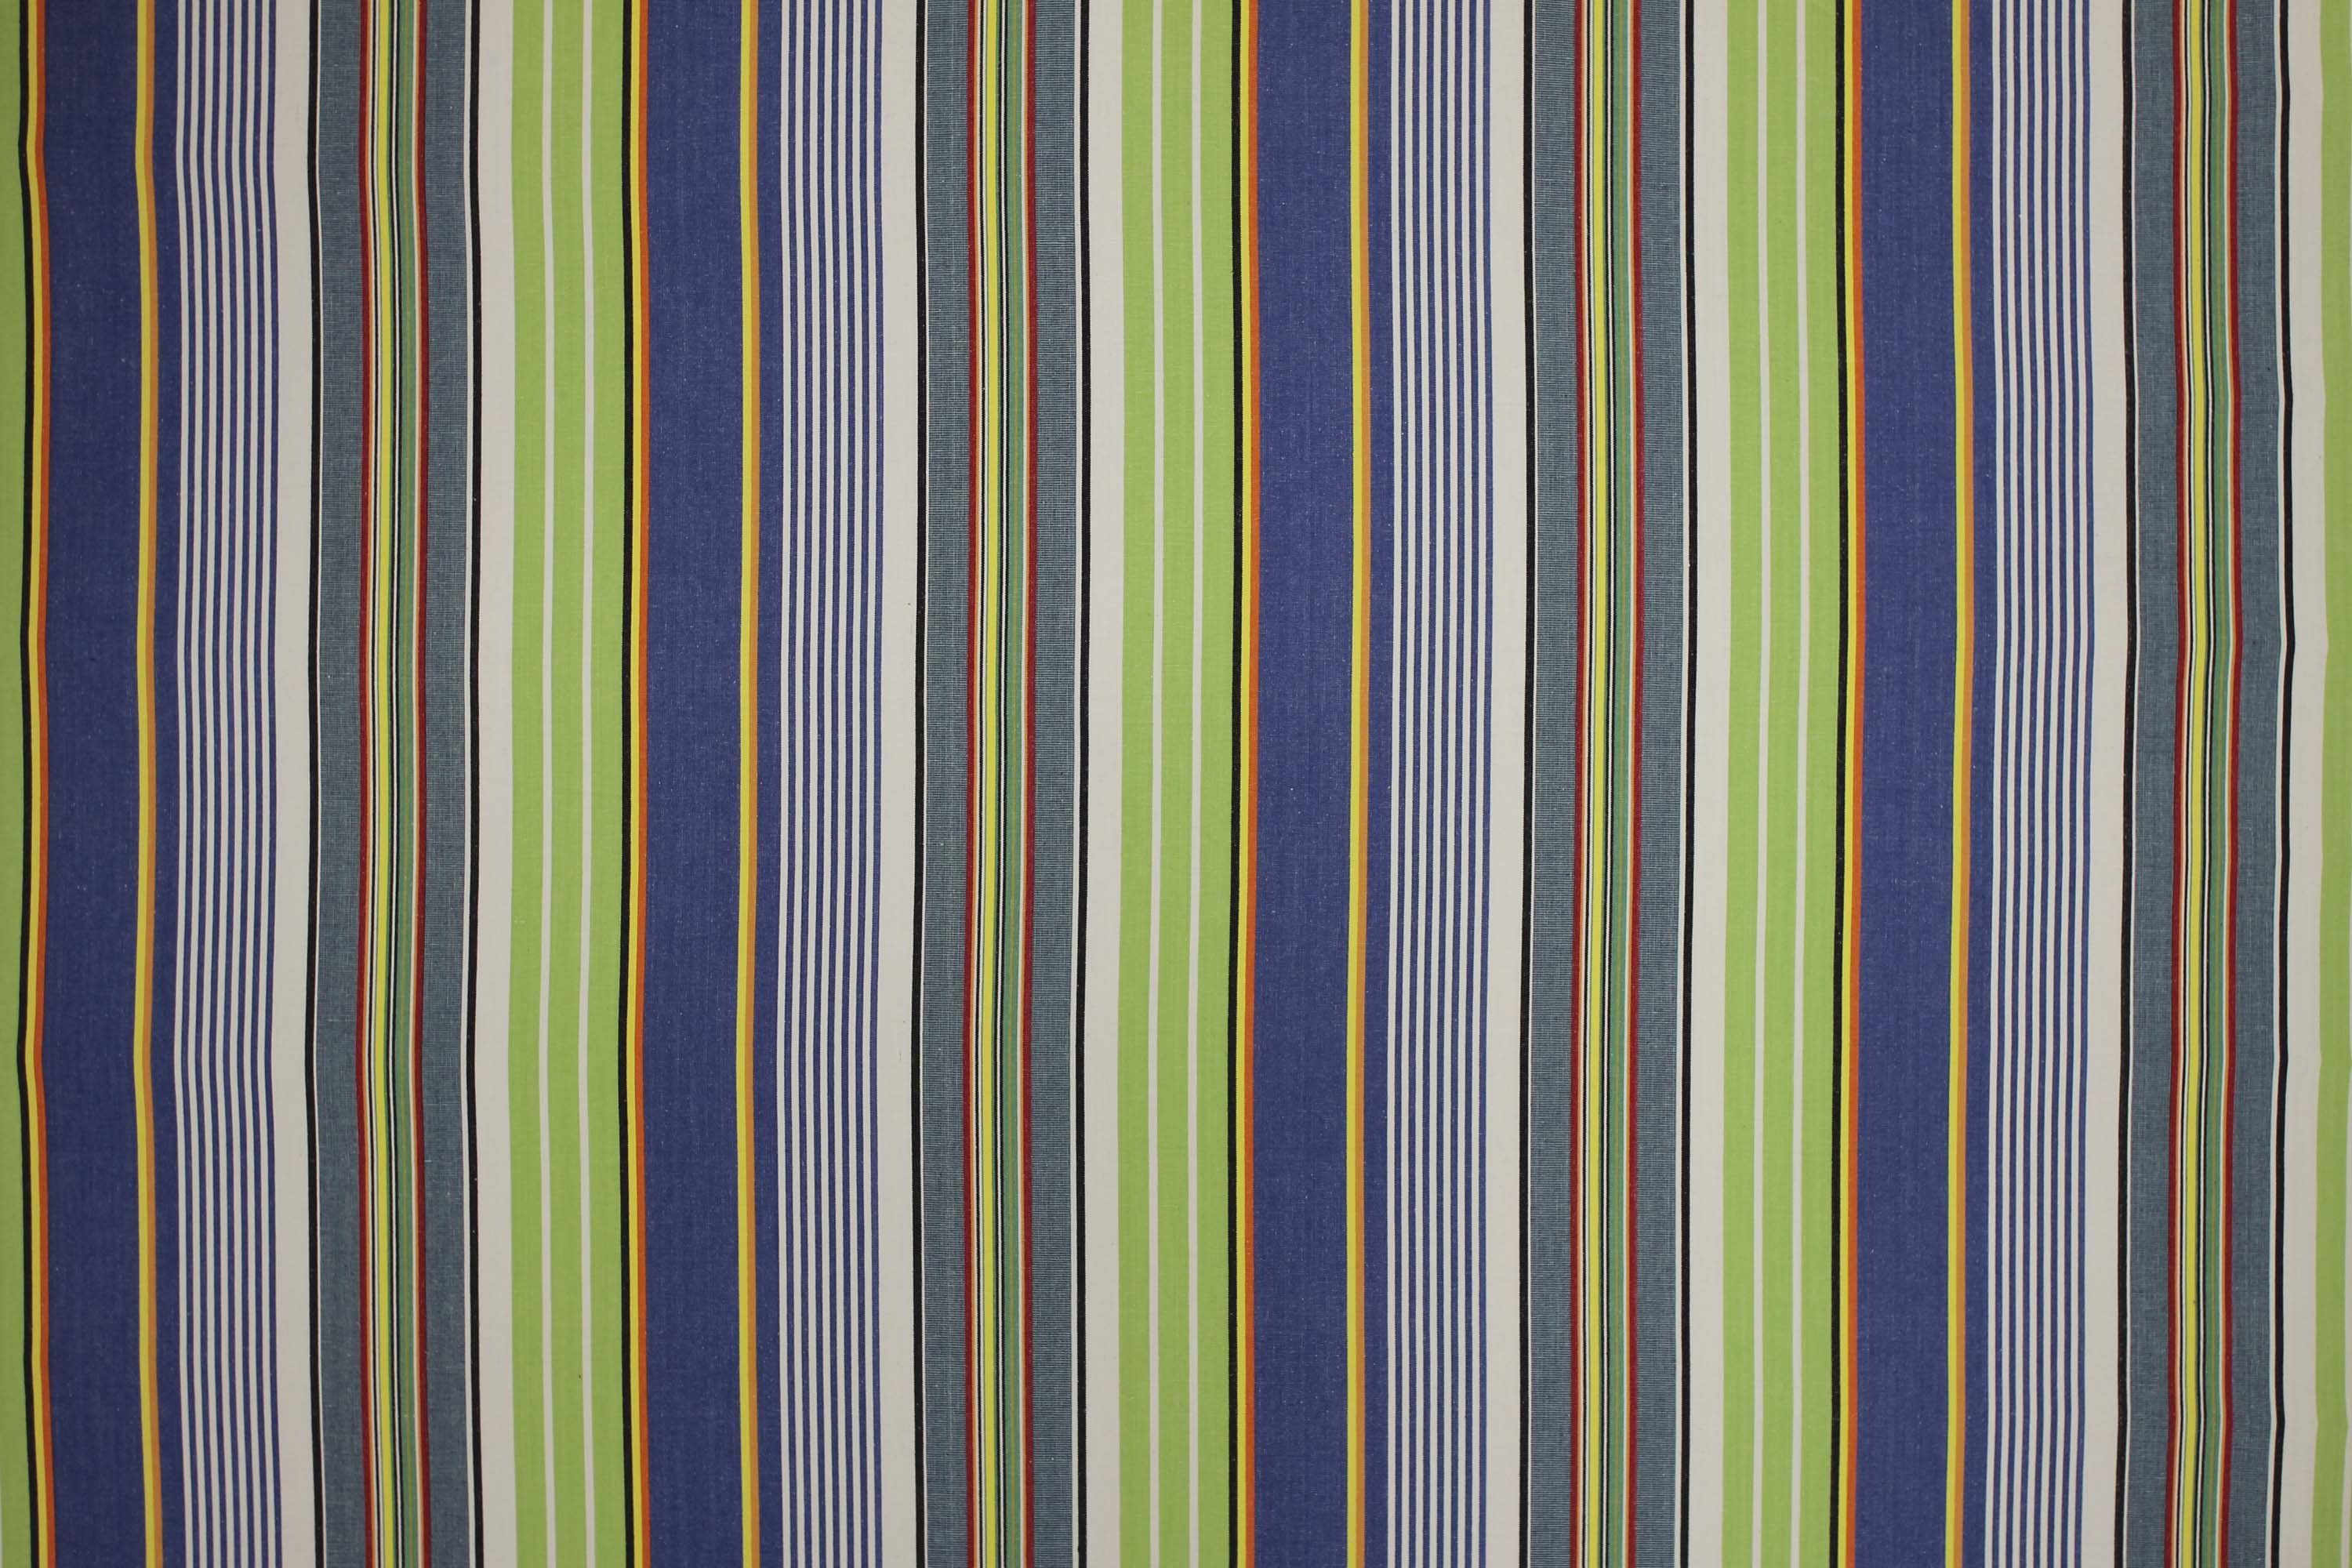 Striped Fabrics | Stripe Fabrics | Striped Curtain Fabrics | Upholstery Fabrics | Interior Stripes bright blue, denim blue, lime green